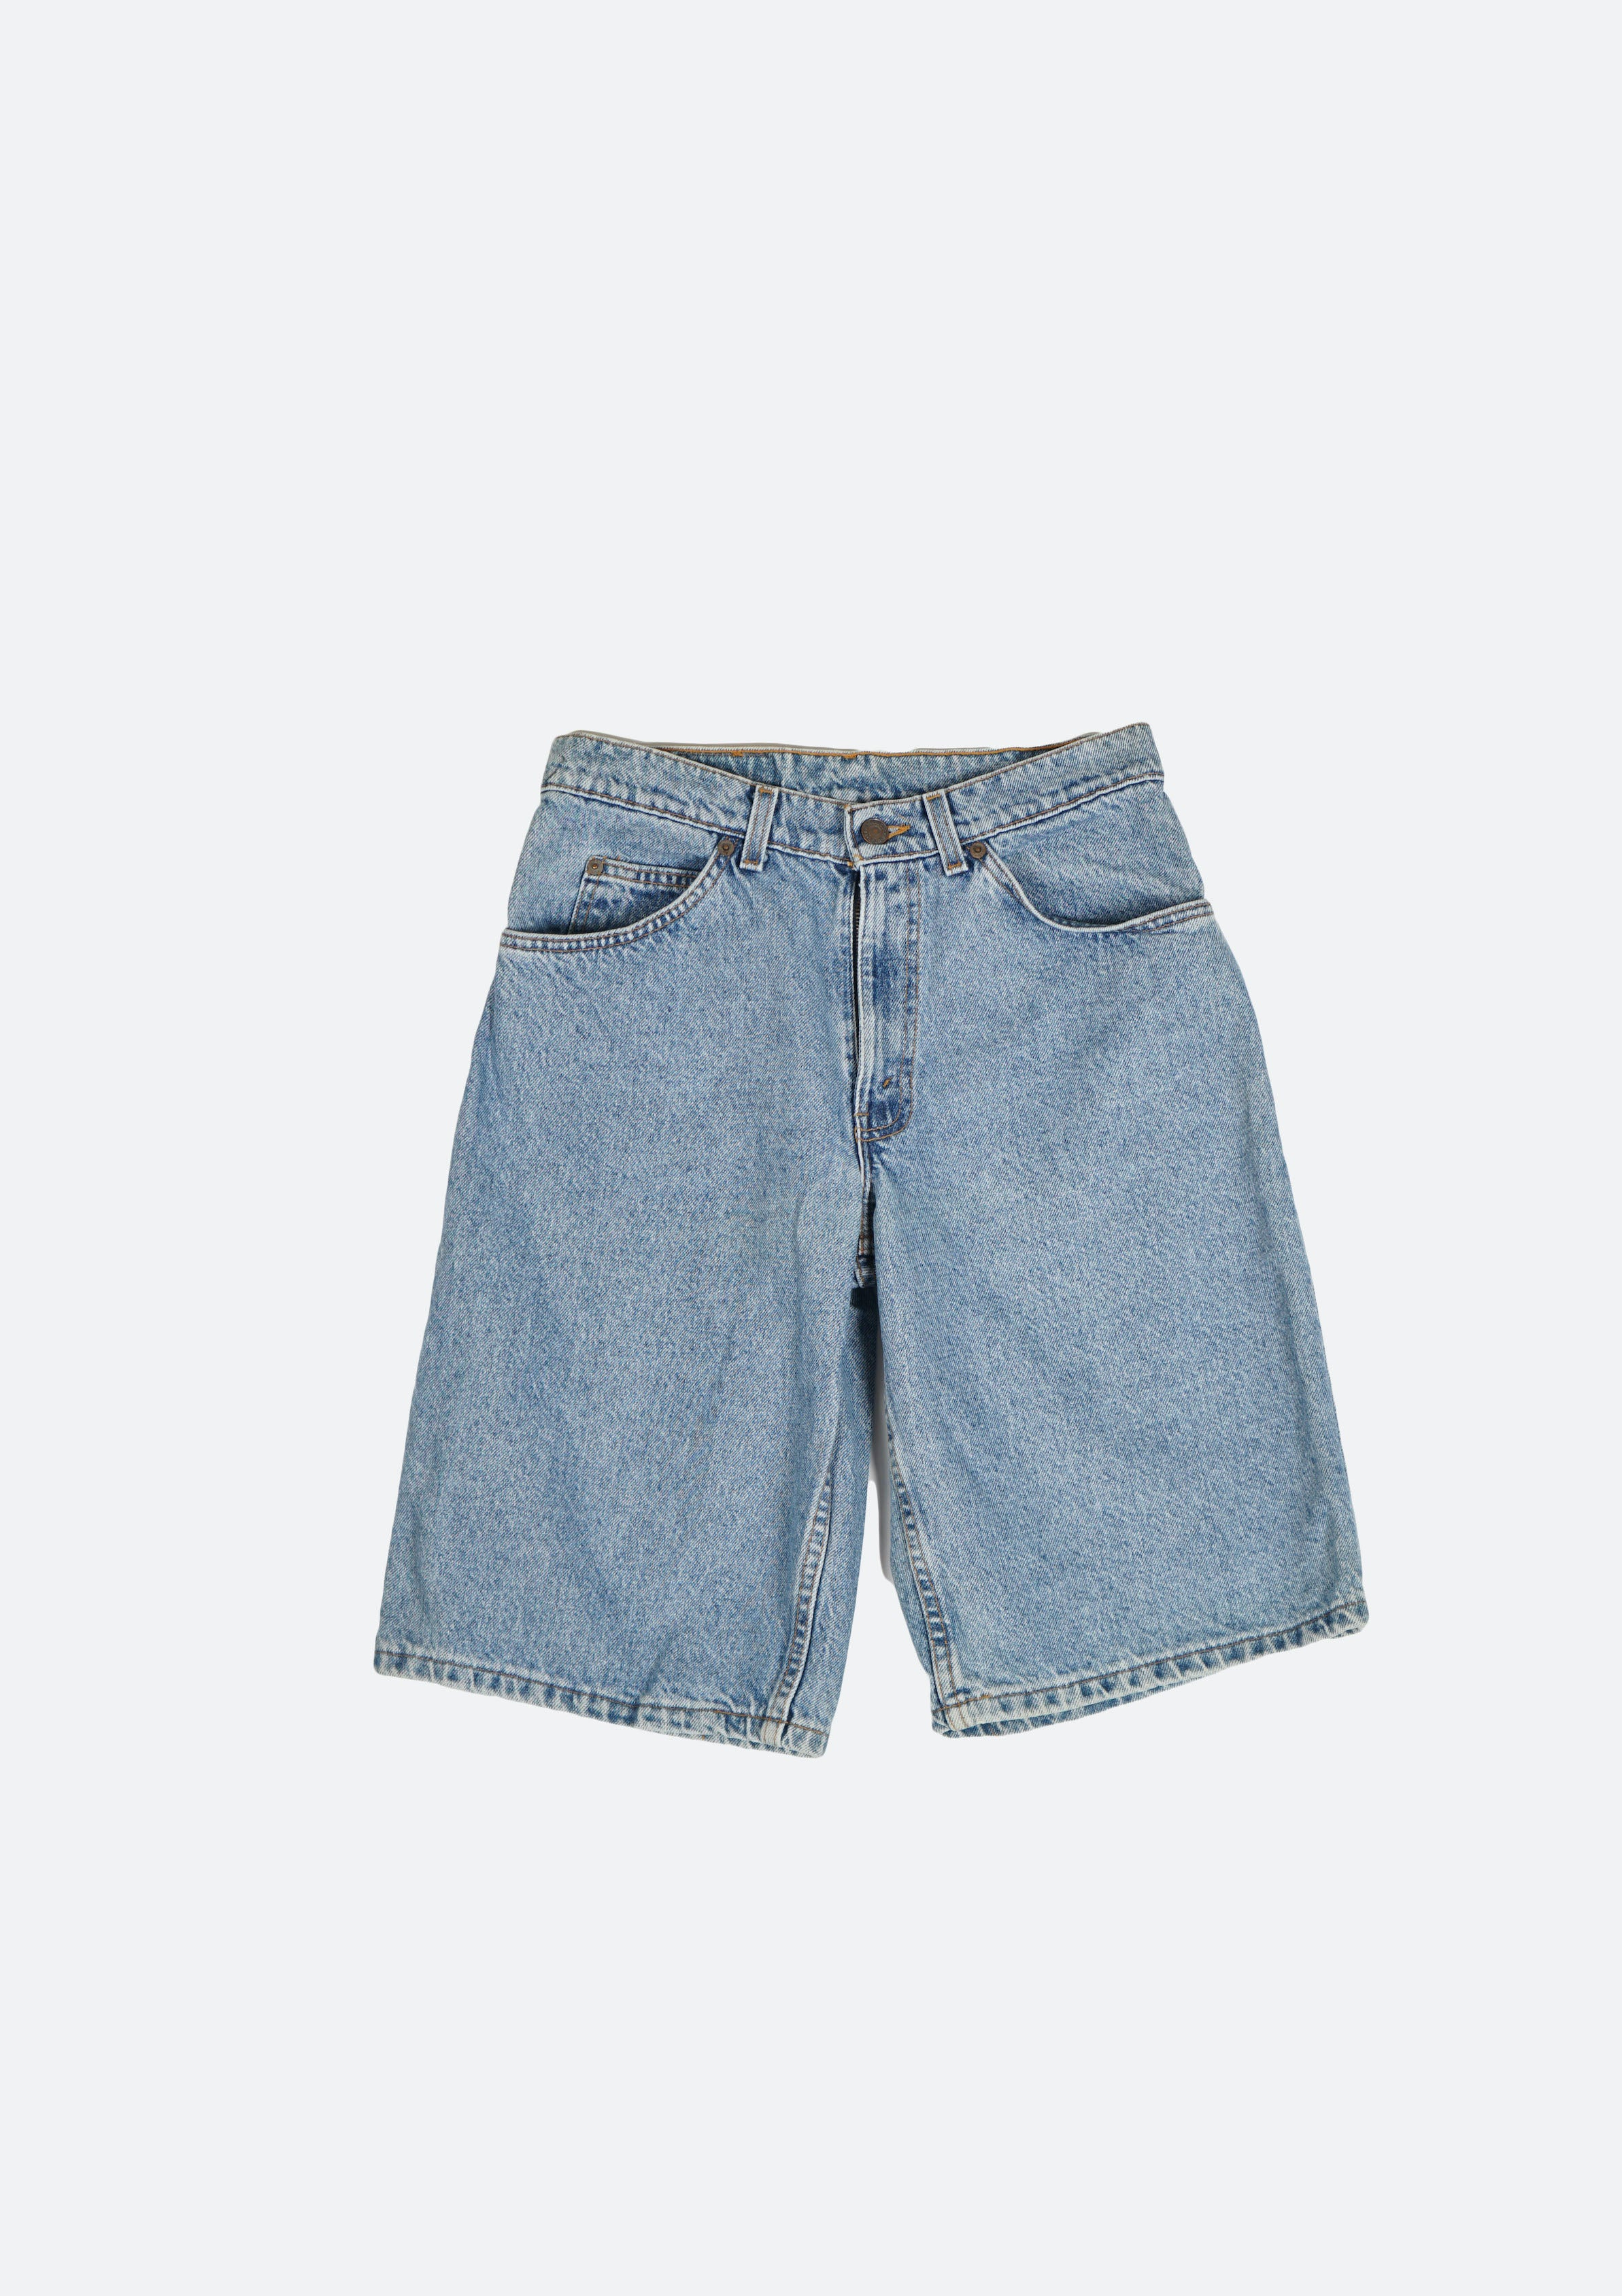 Original Denim Shorts W29